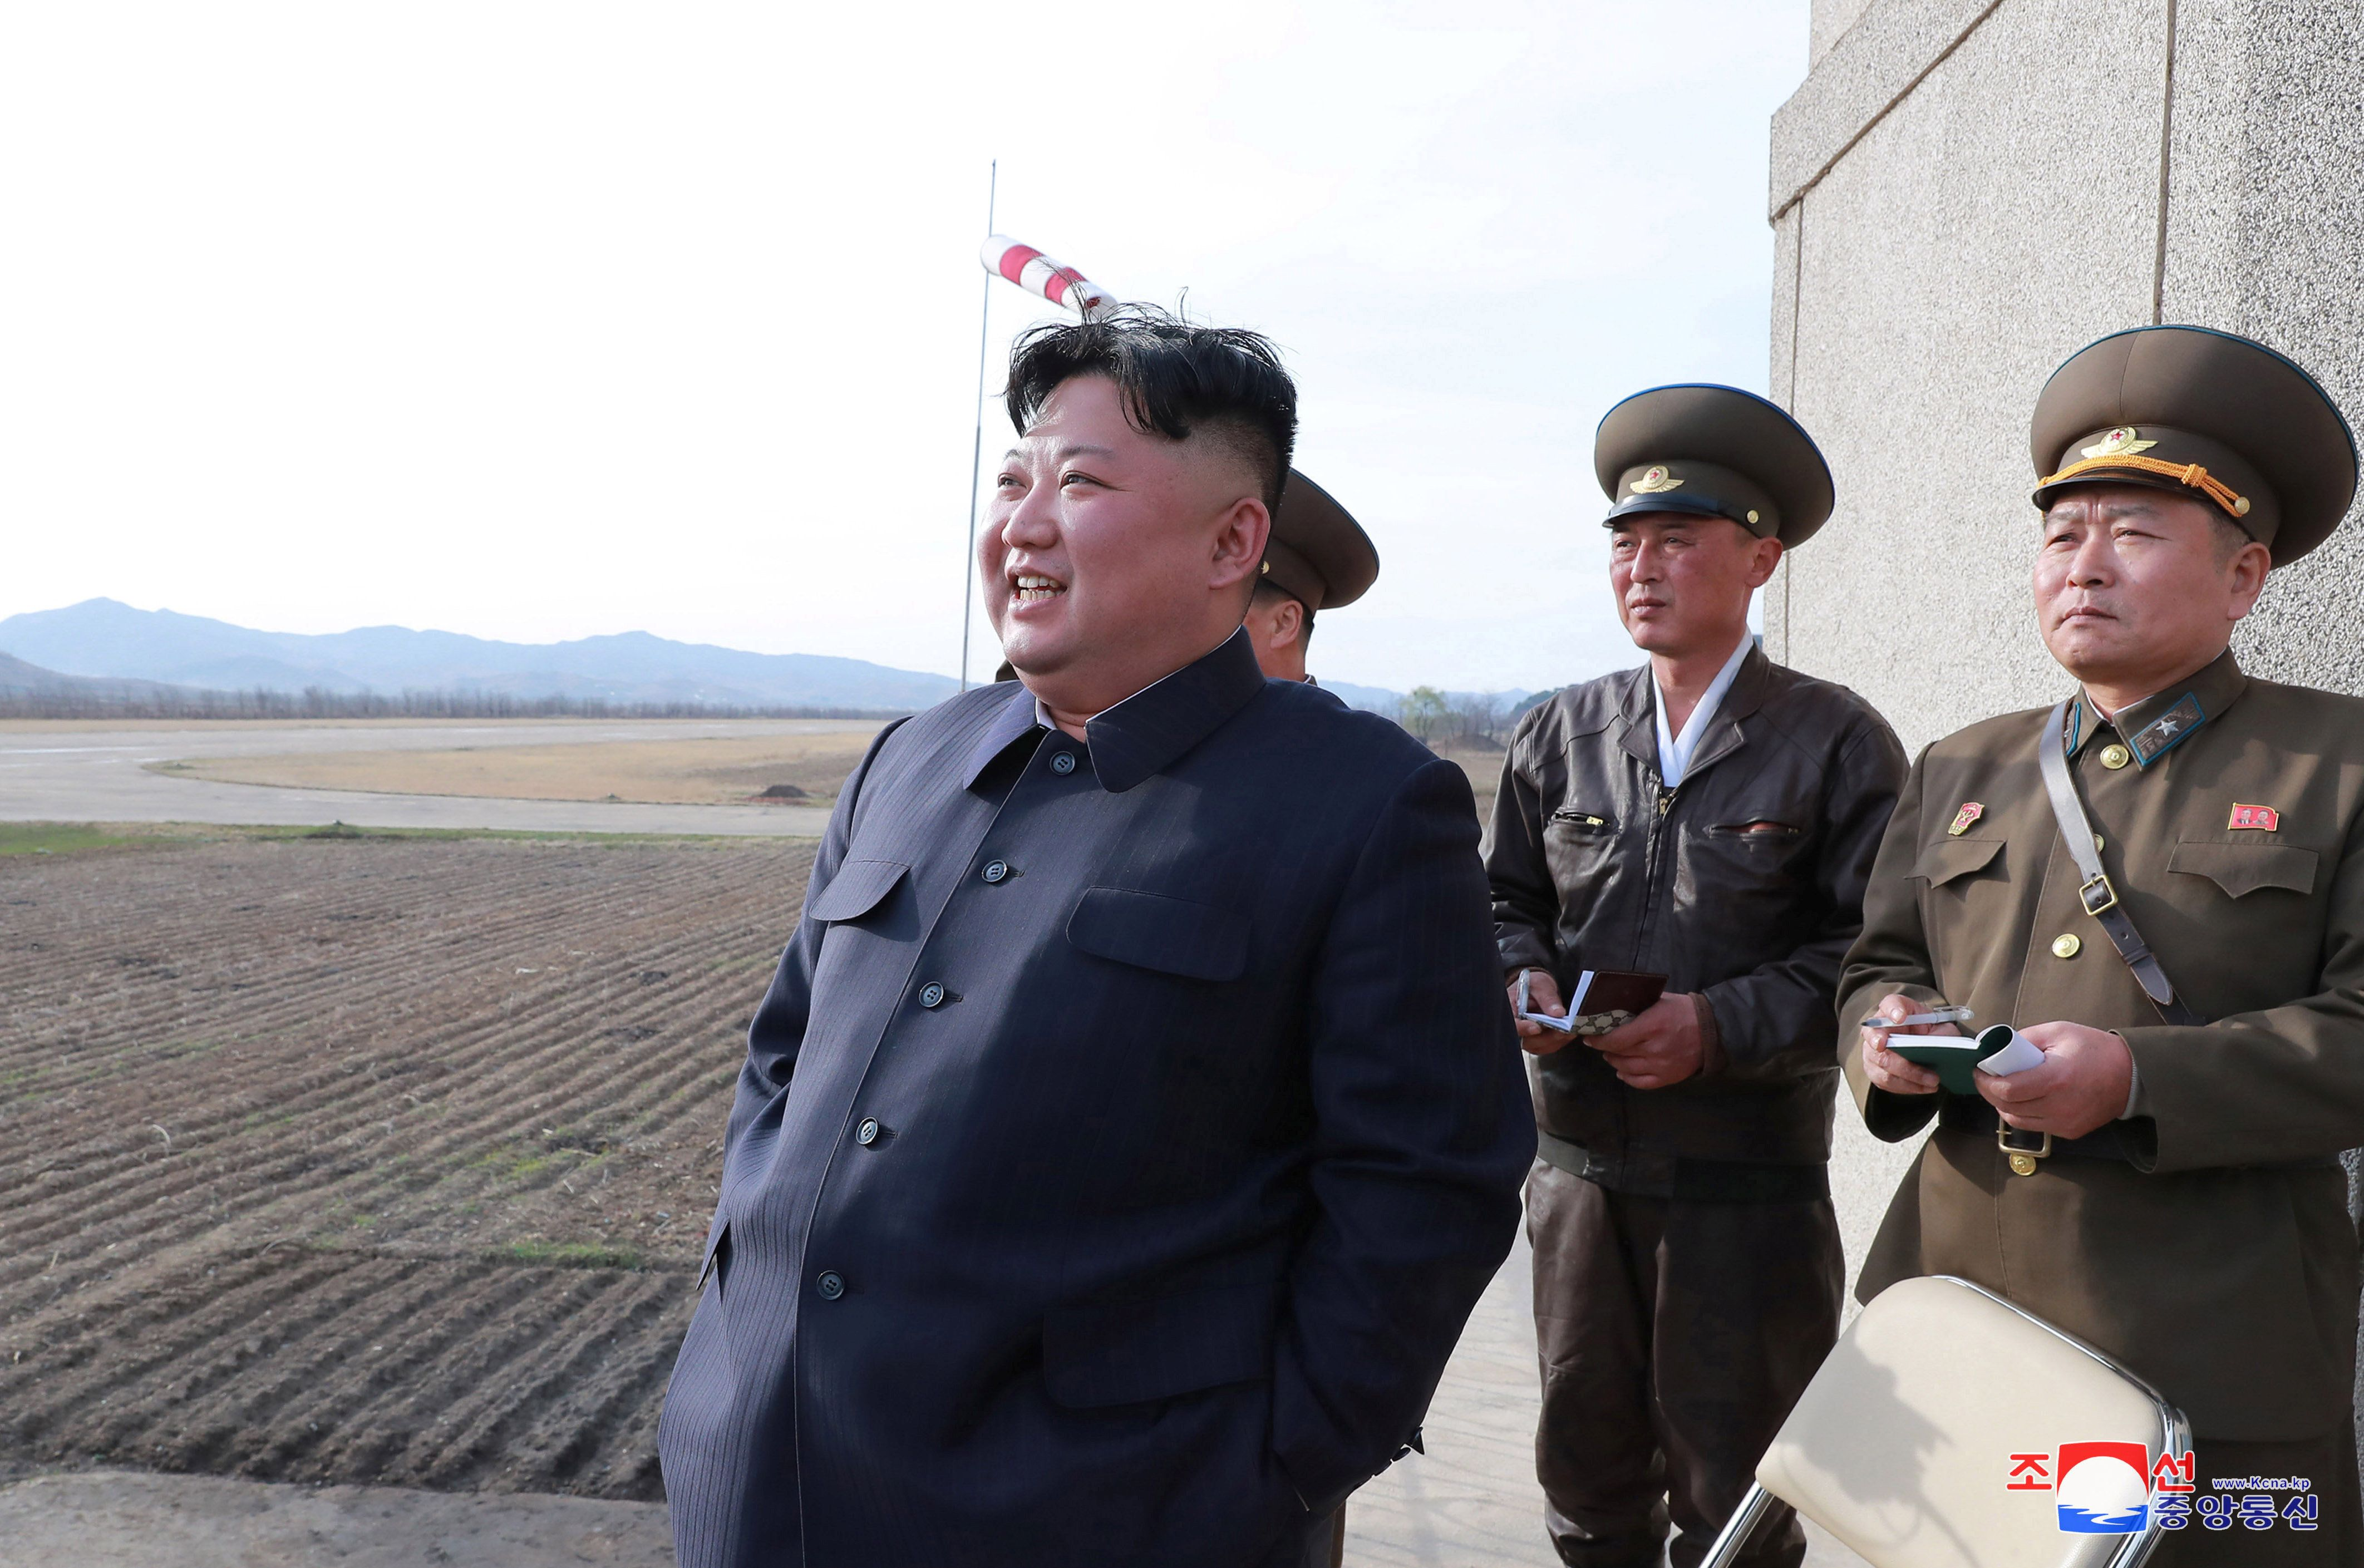 North Korean leader Kim Jong Un gives guidance while attending a flight training of the Korean People's Army Air Force at an